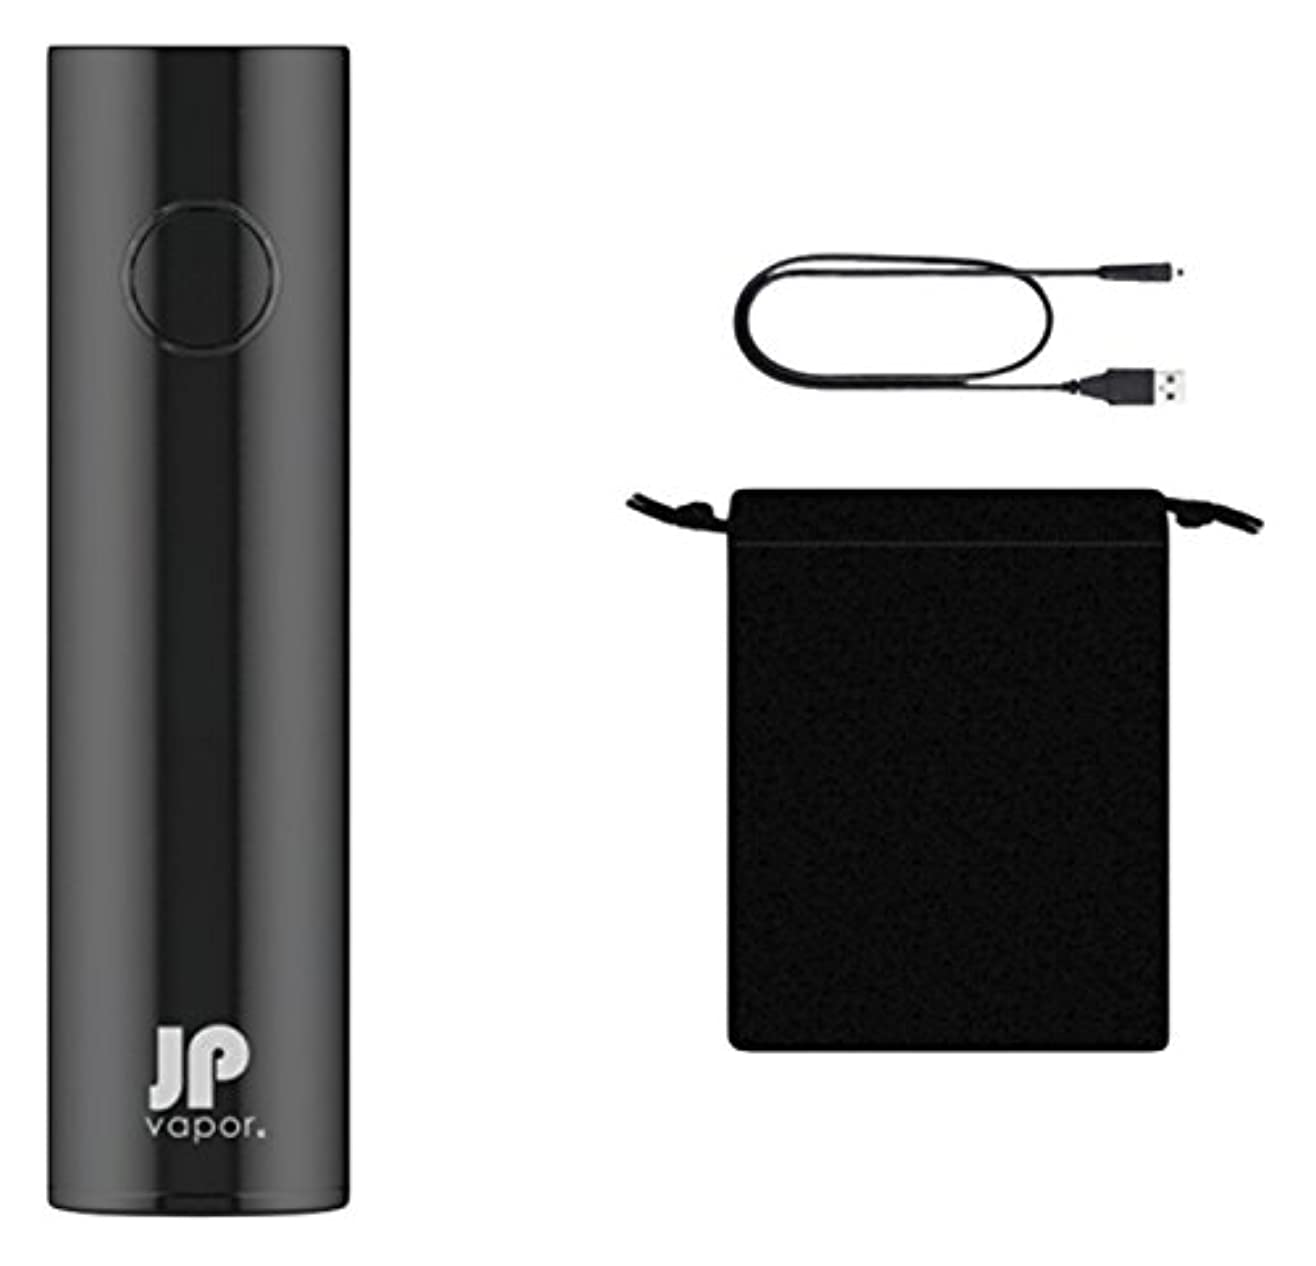 男性欠席劇作家JPvapor I-1600 Battery Set Black(jpvapor_i-1600batteryset_black)